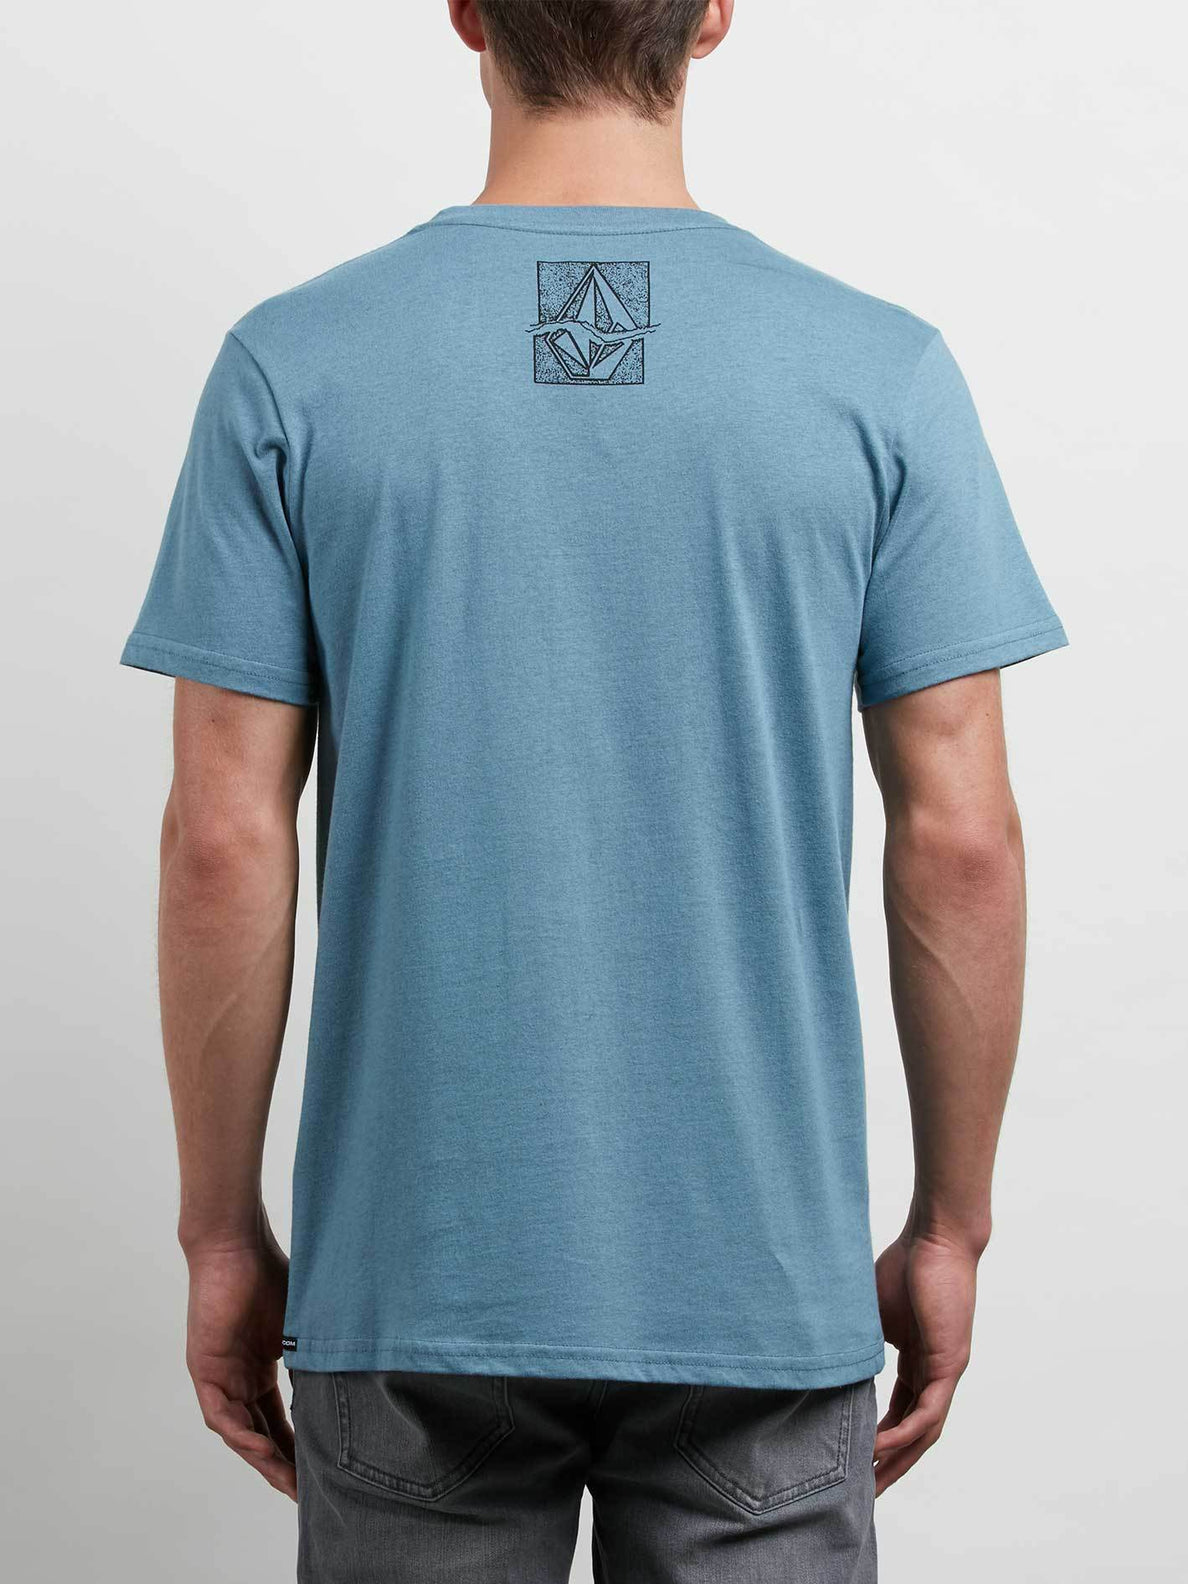 Edge Tee In Wrecked Indigo, Back View